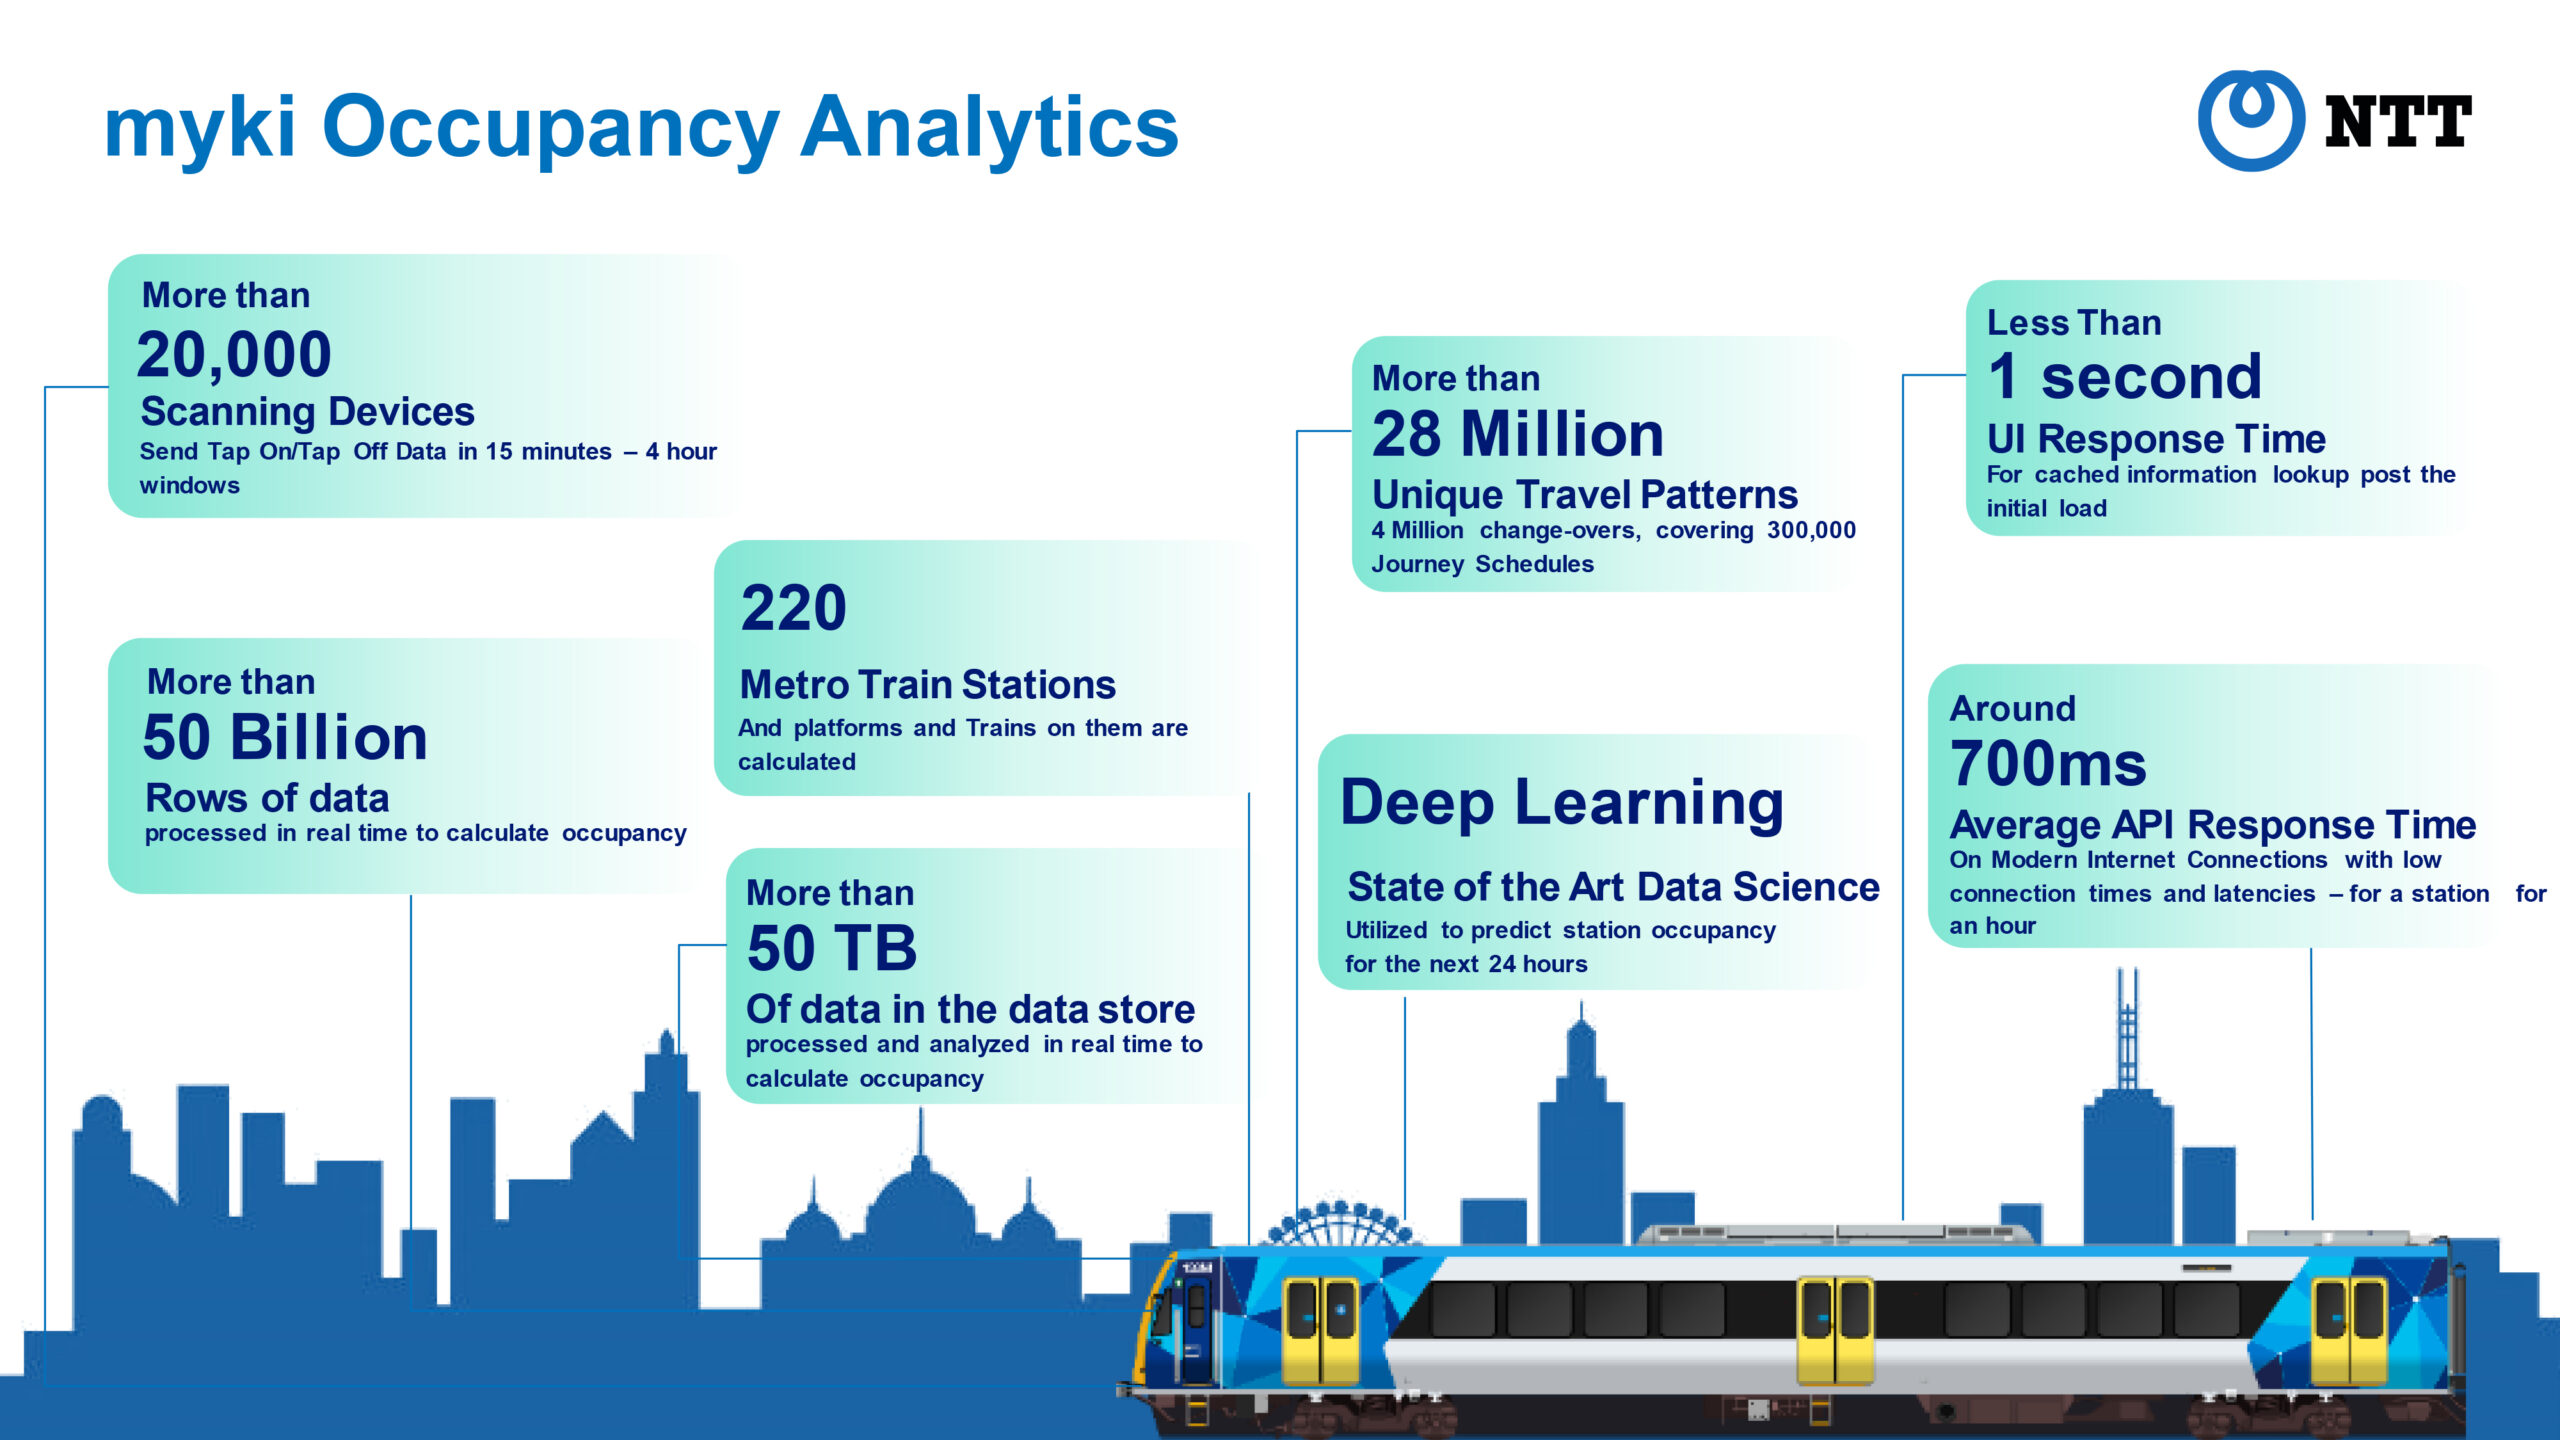 Analytics-Smart-City-scaled_NTT_cmm360